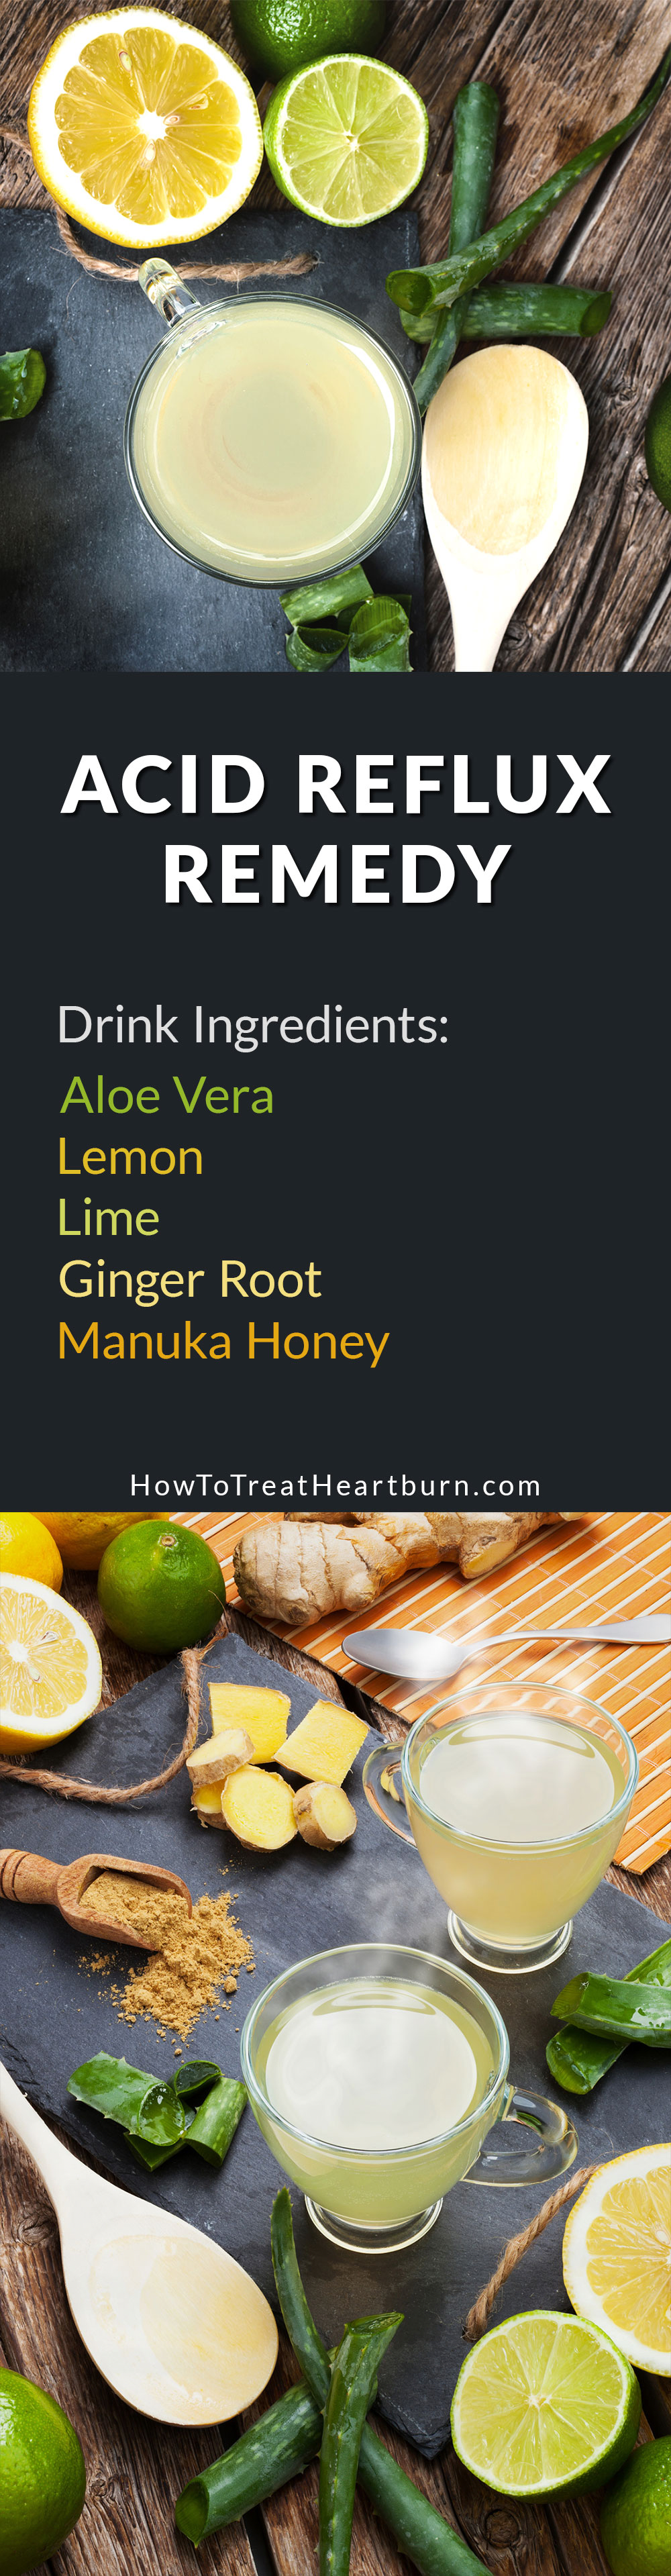 Check out this drink recipe. Aloe vera, lemon, lime, ginger root, and manuka honey can be combined into a healthy drink for the relief of heartburn from acid reflux.